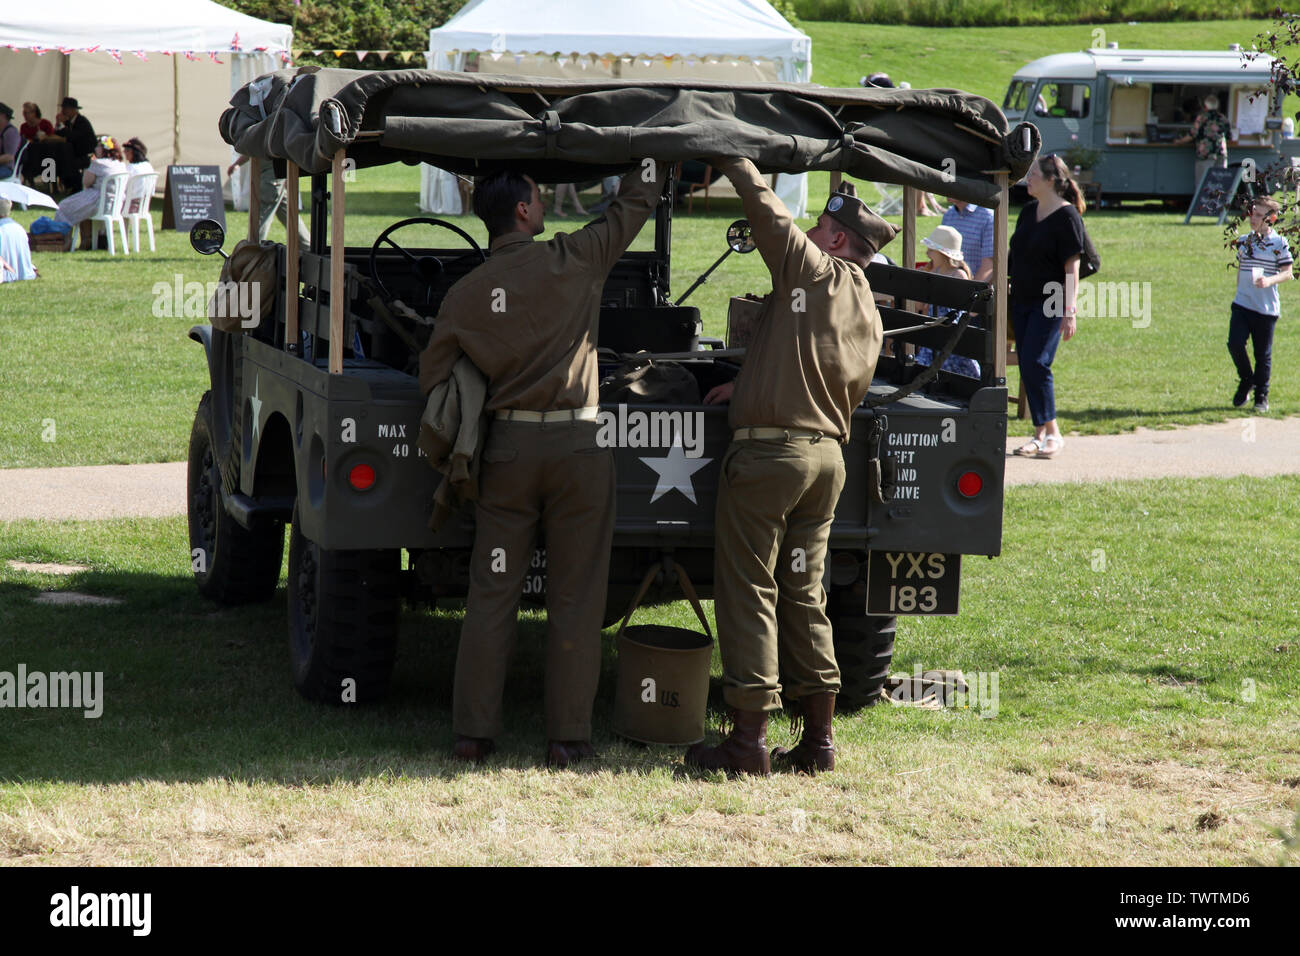 Army Personnel Vehicle on Wooden Plinth Military German Half-Track